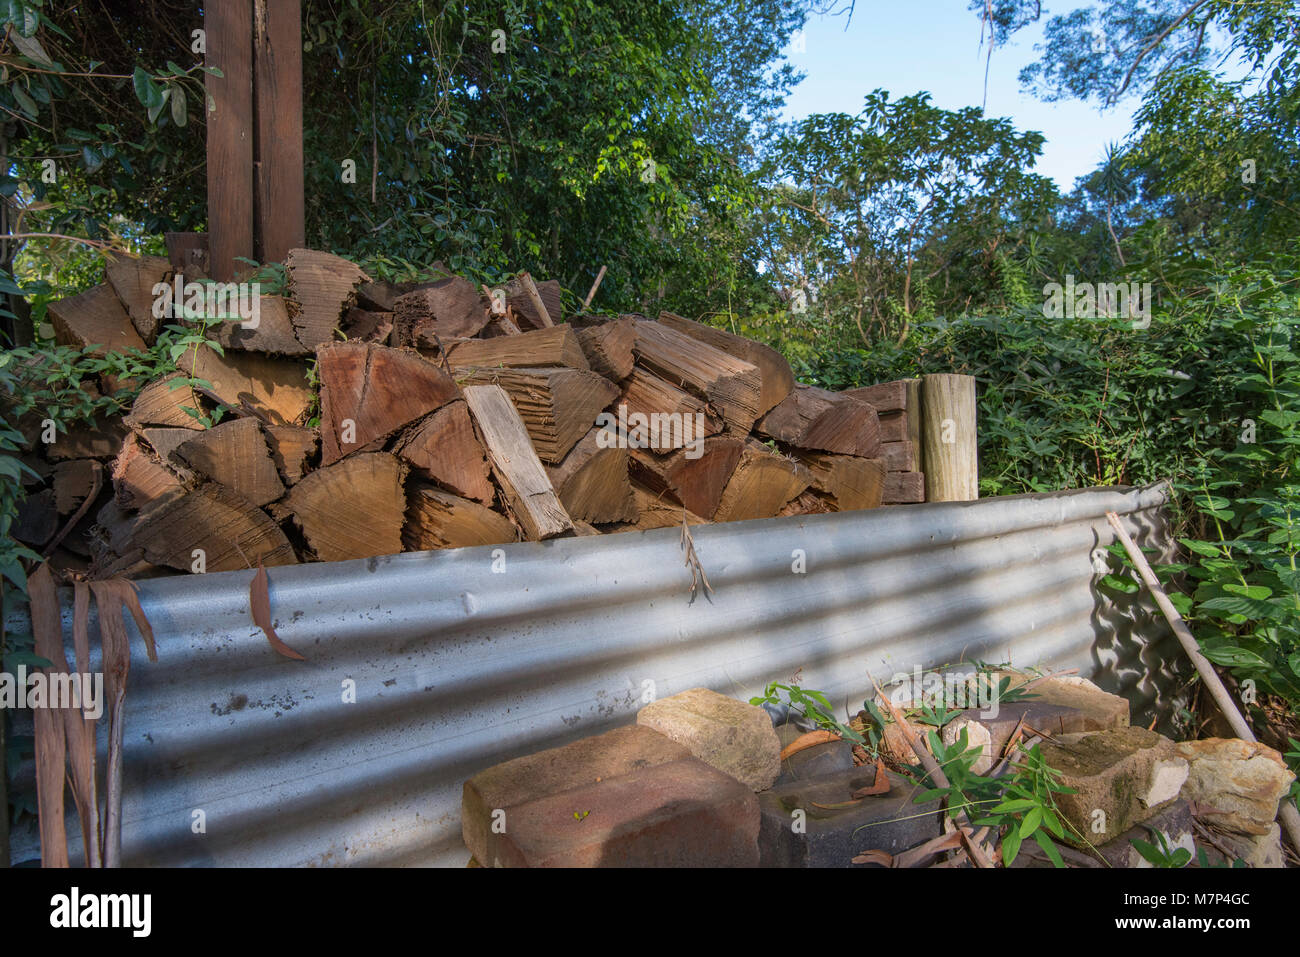 A stack of cut wood drying for use in a home fireplace in Sydney, Australia - Stock Image